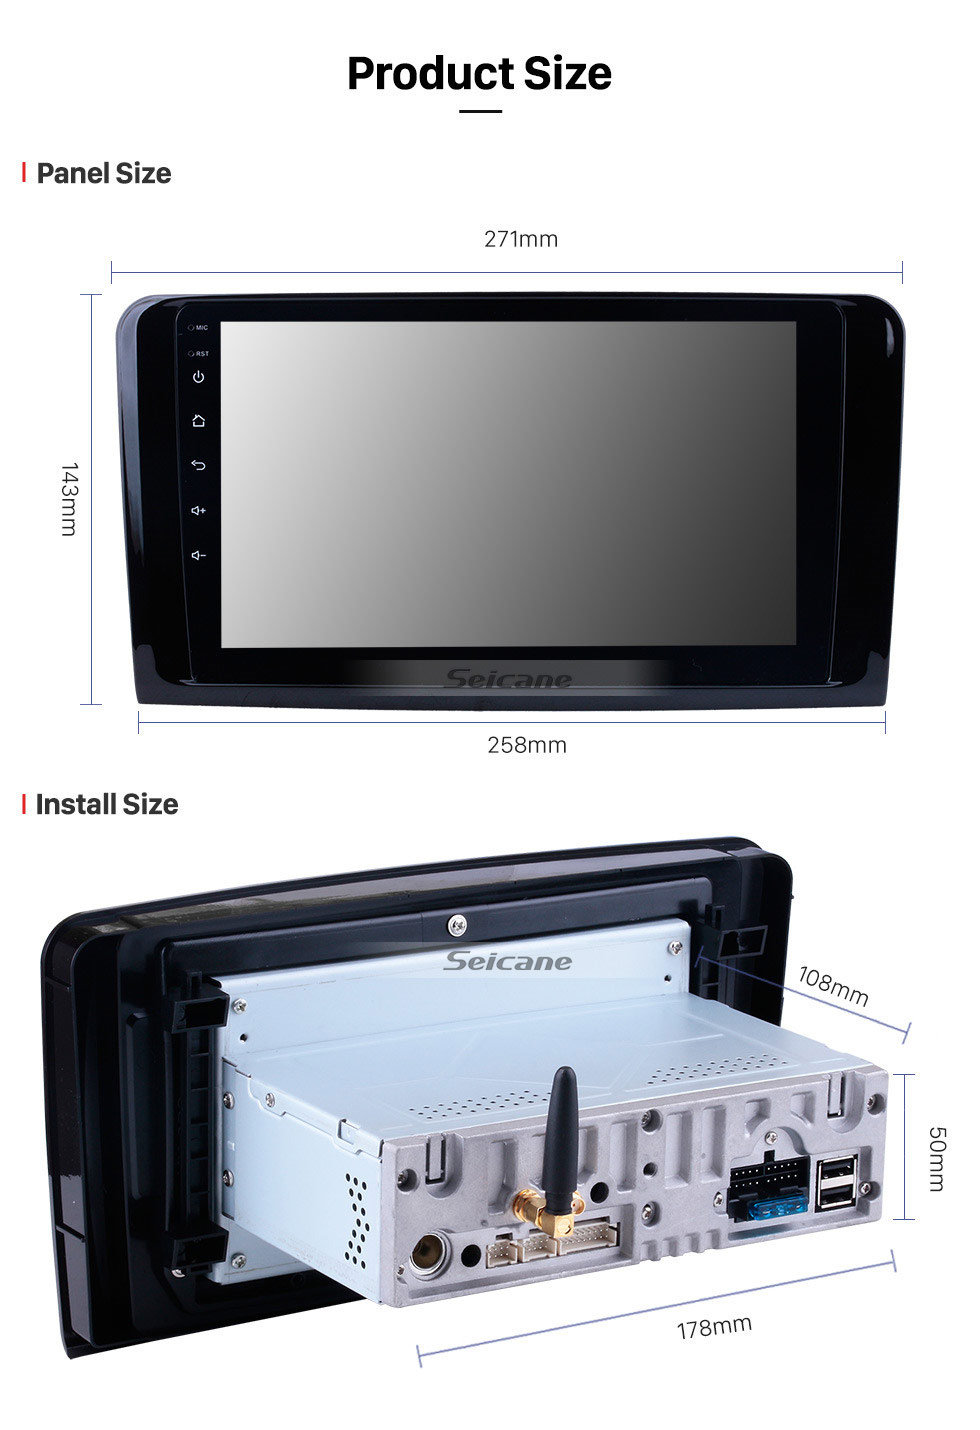 Seicane 2005-2012 Mercedes Benz ML Class W164 ML280 ML300 ML320 ML350 ML420 ML450 ML500 ML550 ML63 Radio Removal with Android 9.0 GPS Navigation Stereo 1024*600 Multi-touch Capacitive Screen DVD Mirror Link OBD2 Bluetooth 4G WiFi